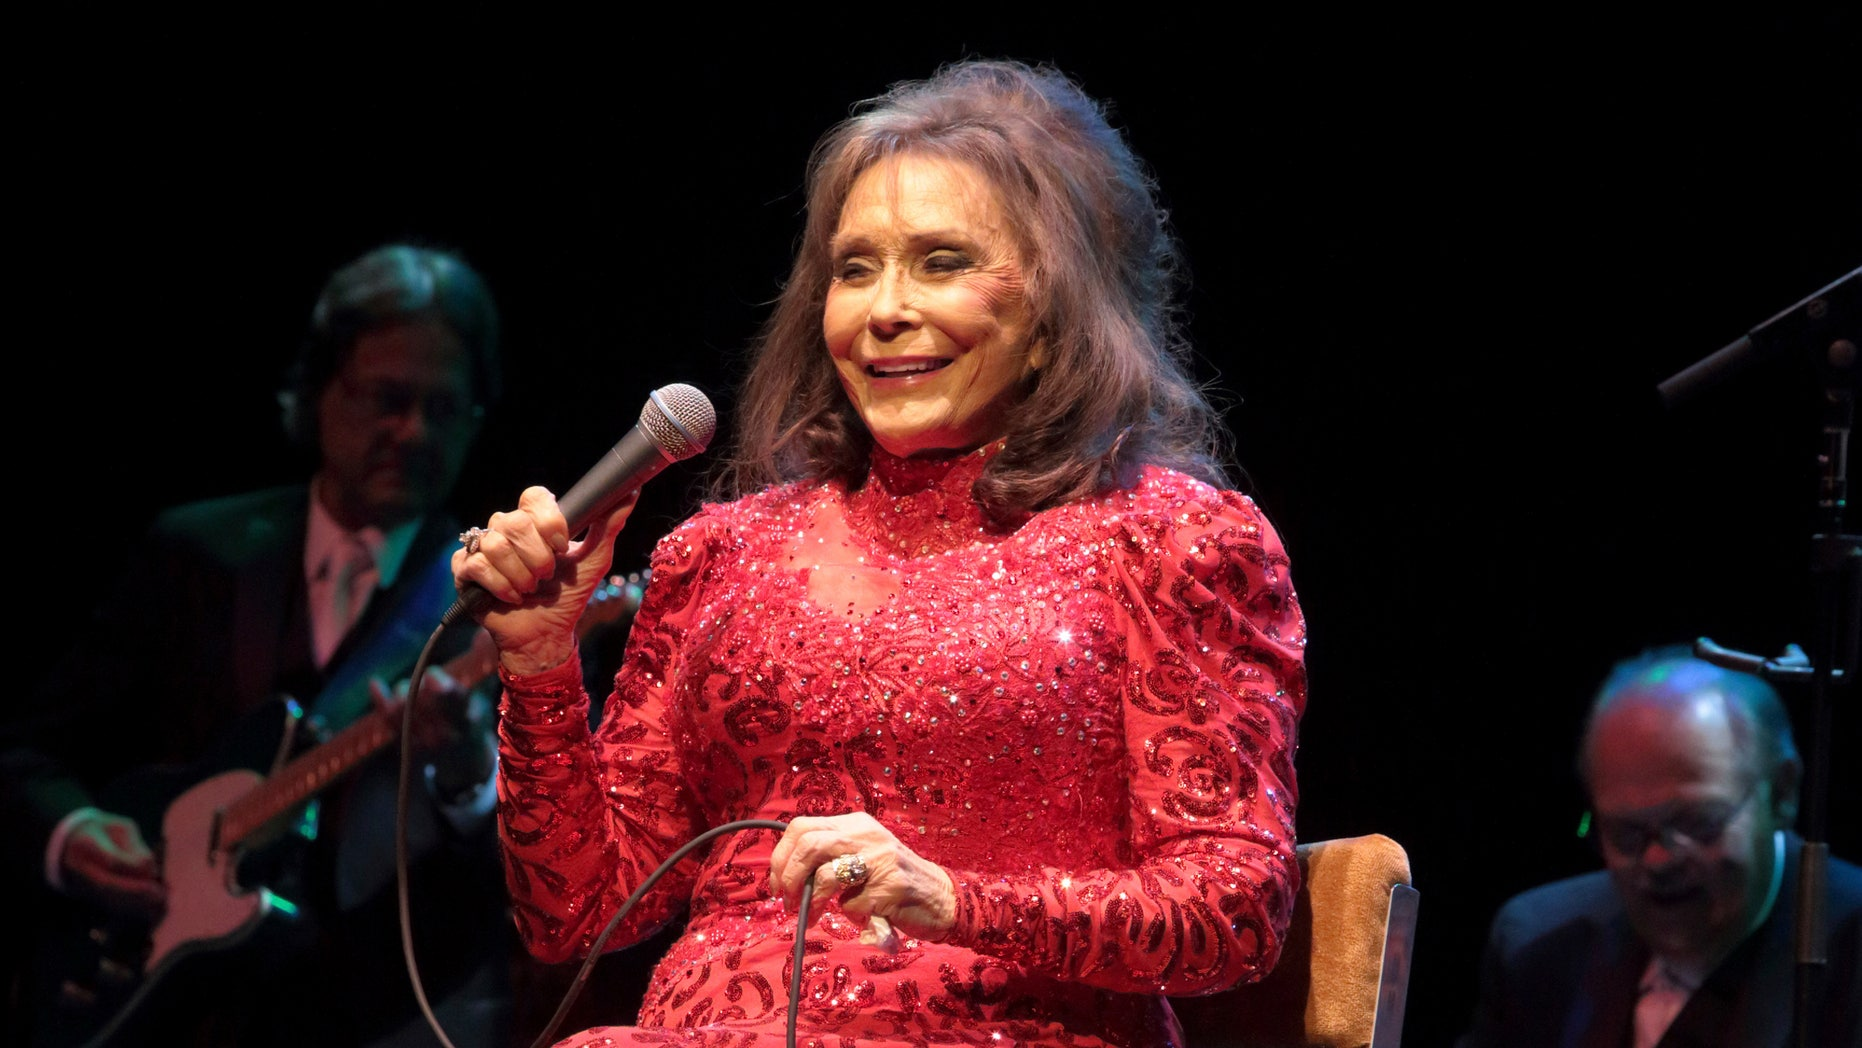 In this Aug. 28, 2016 file photo, Loretta Lynn performs in concert at the American Music Theater in Lancaster, Pa. Lynn says she is doing better after a brief hospital visit to treat an illness that kept her from attending a CMT tribute to her and other female country artists.